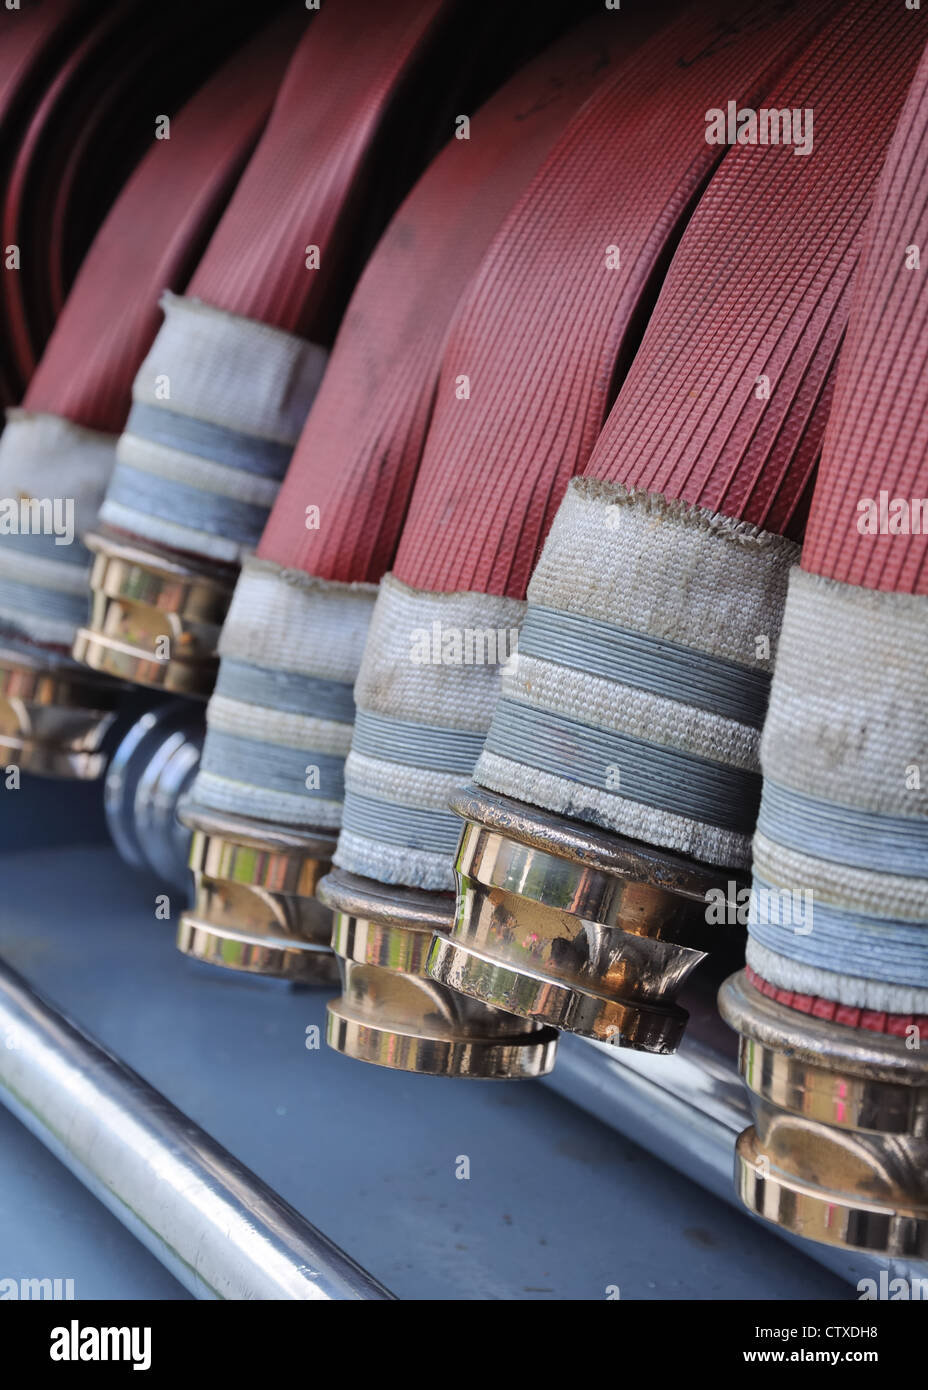 Close up of shiny brass couplings on fire service hose. - Stock Image